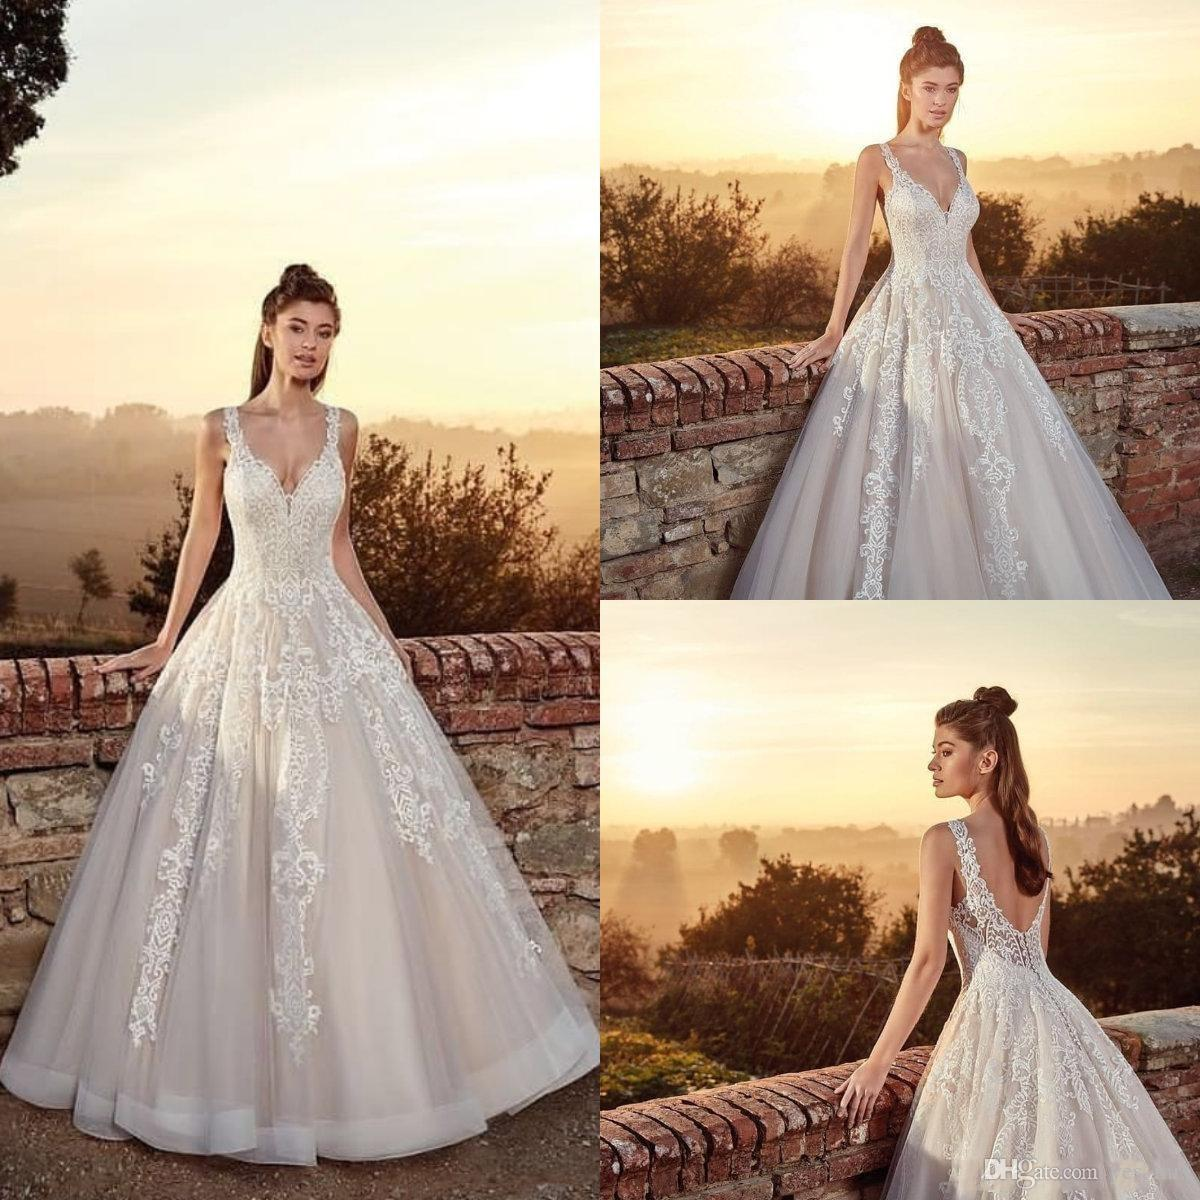 f5e5e921e3efb Discount New Arrival 2018 Eddy K Wedding Dress A Line Vintage V Neck  Backless Lace Applique Country Spaghetti Straps Arabic Bridal Gowns Sweep  Train ...